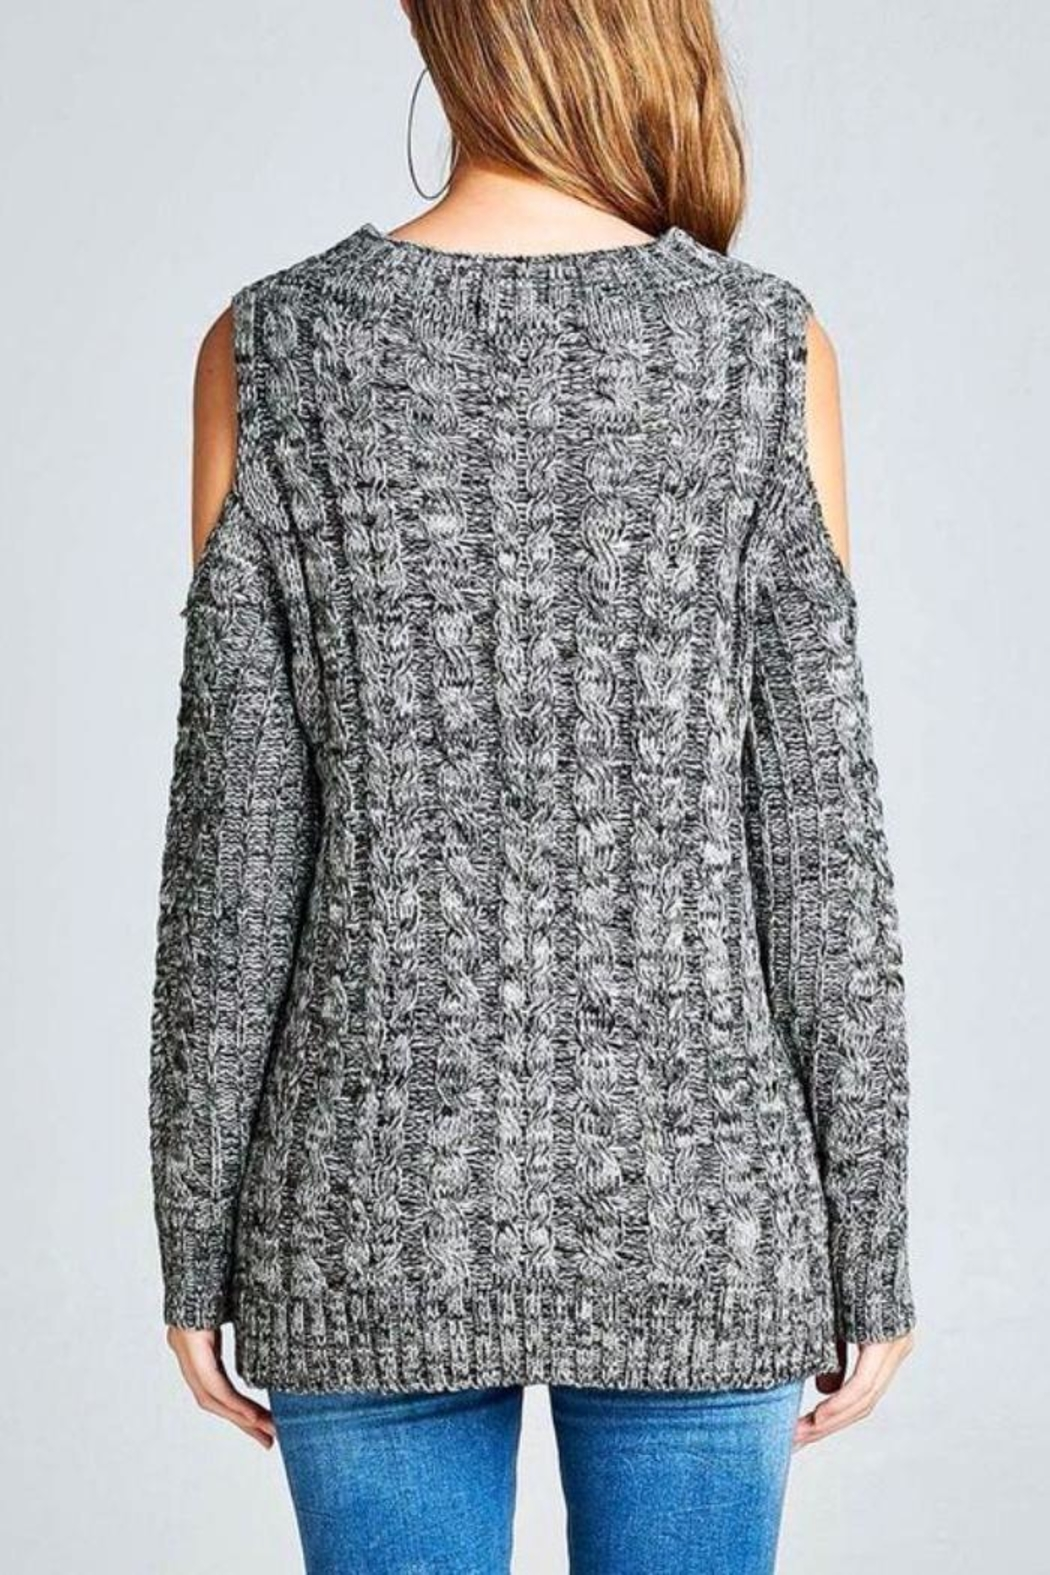 Simply Chic Open Shoulder Sweater - Front Full Image